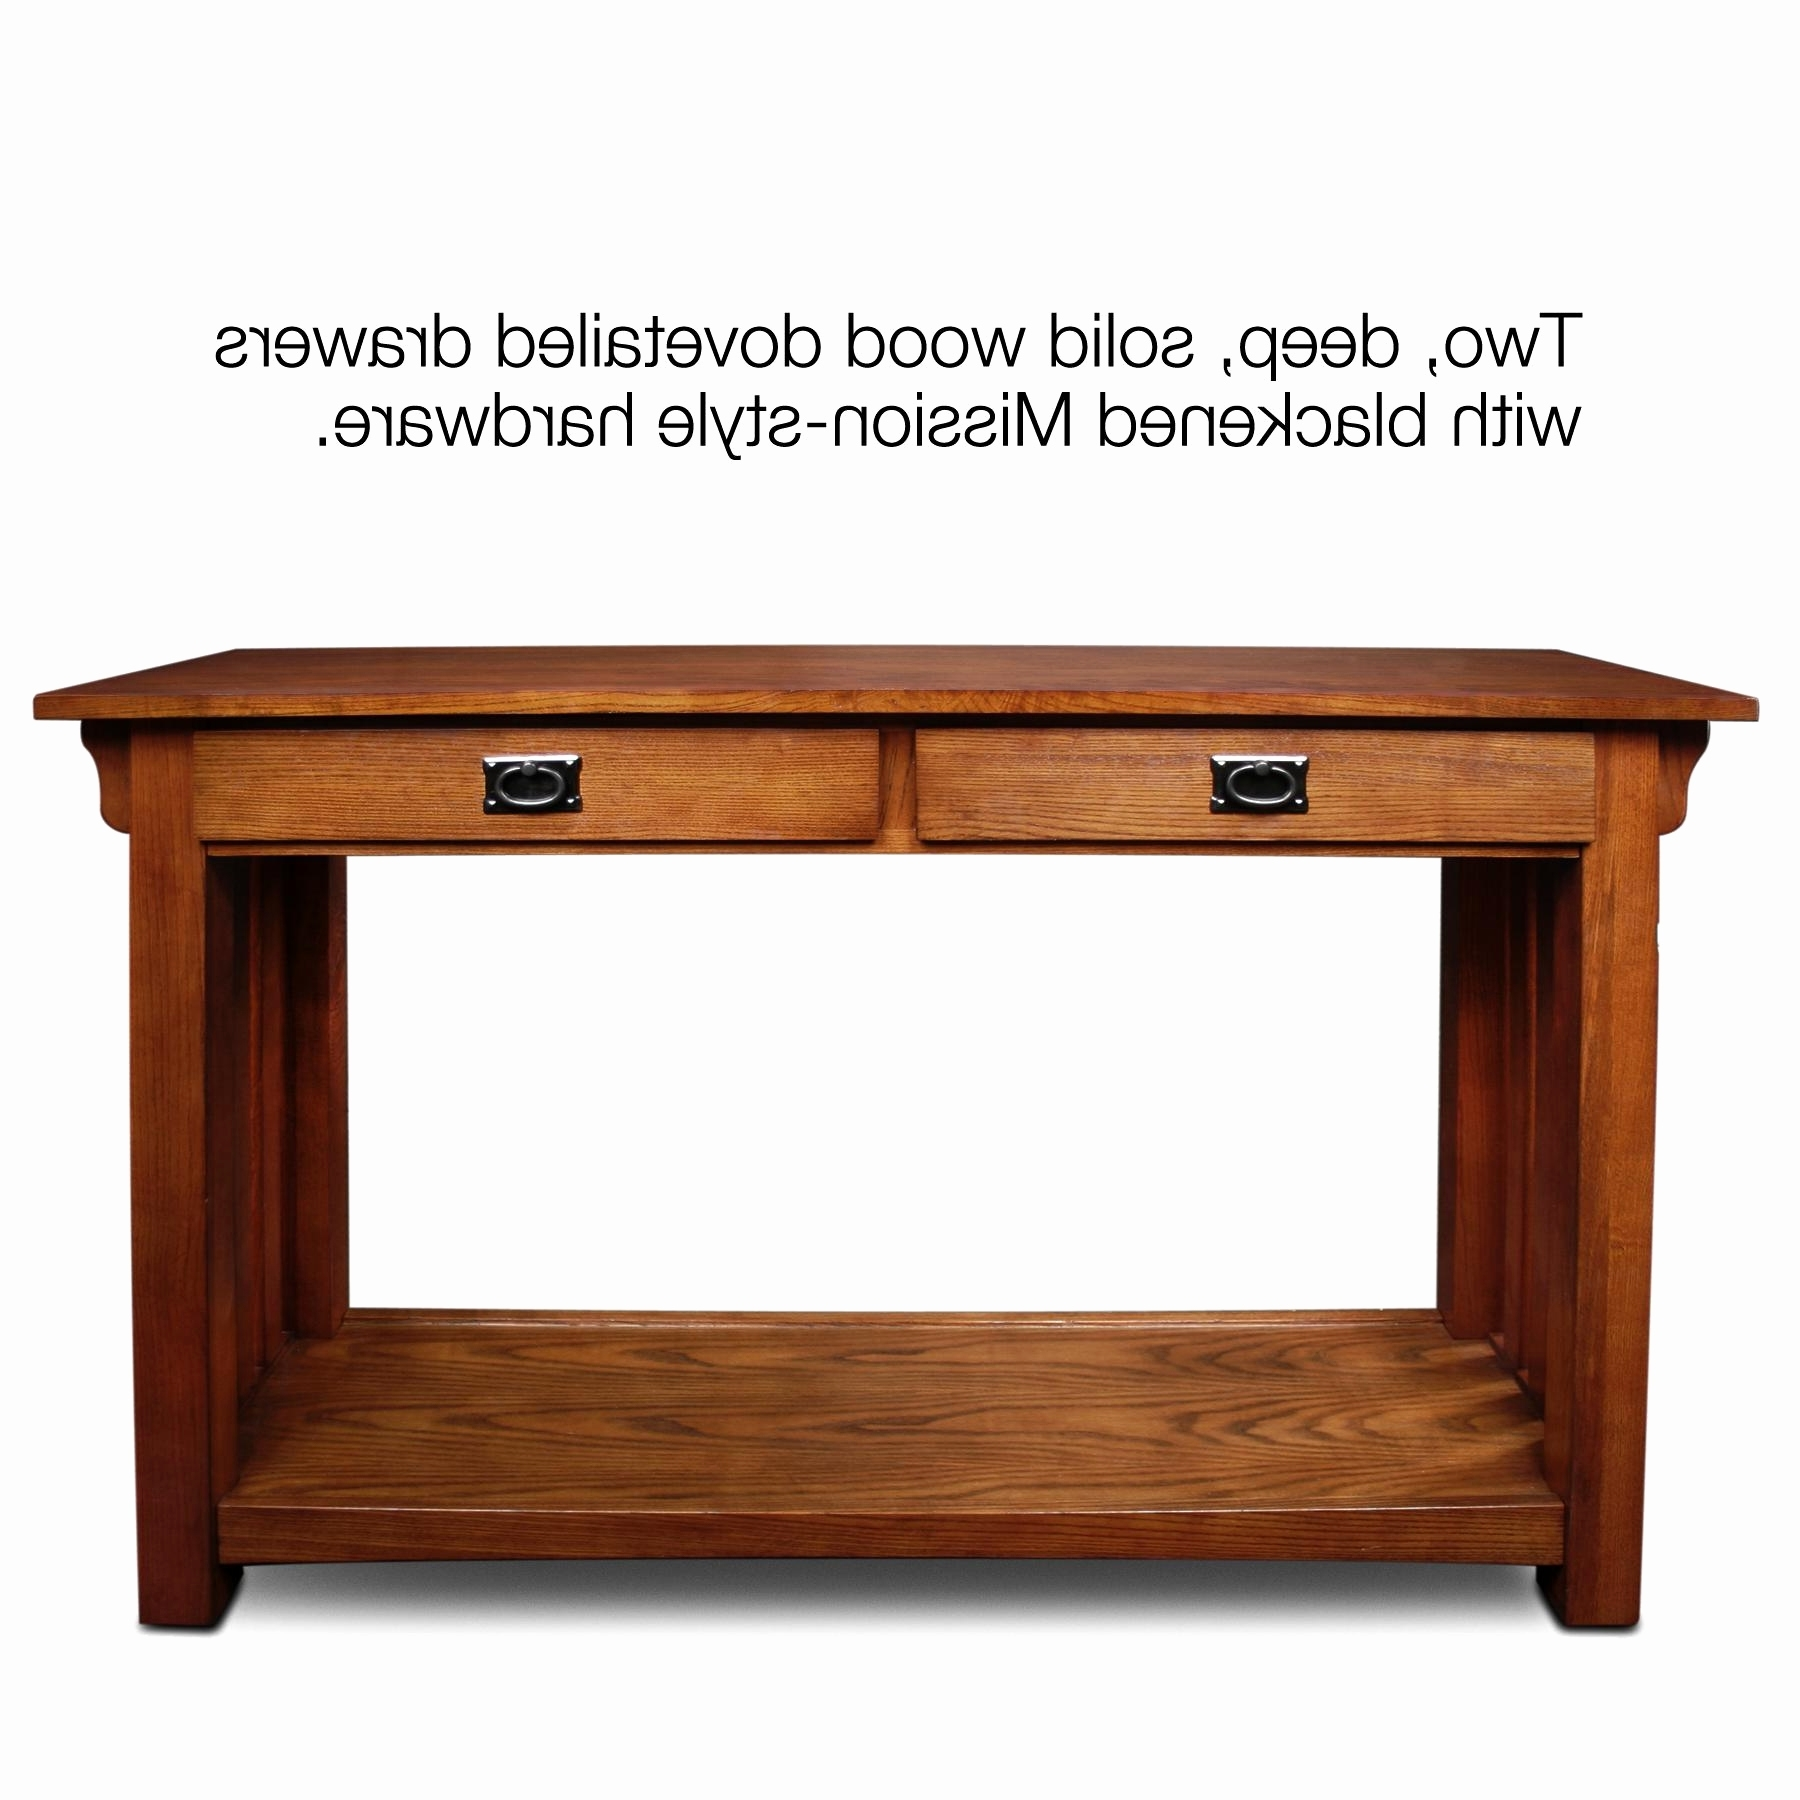 Sofa Table 72 Inches Long Colorful Amazon Com Leick Furniture For 2018 Valencia 72 Inch Extension Trestle Dining Tables (View 25 of 25)